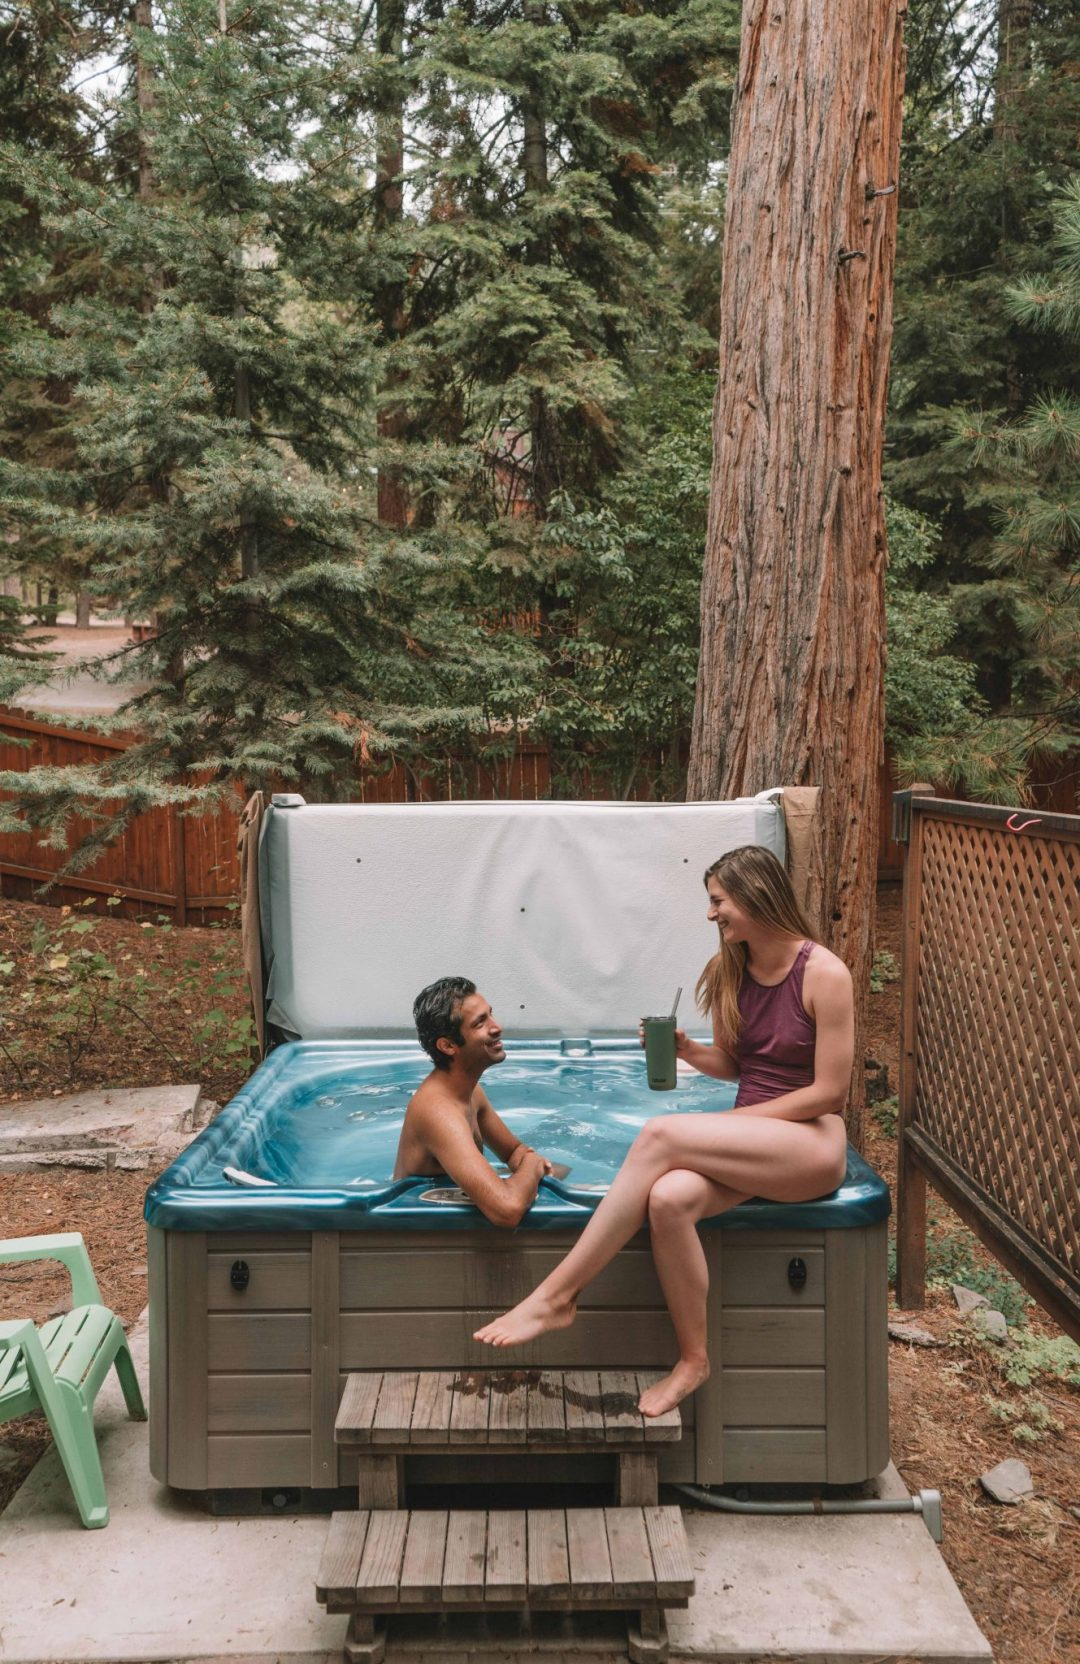 romantic things to do in the bay area - hot tubbing